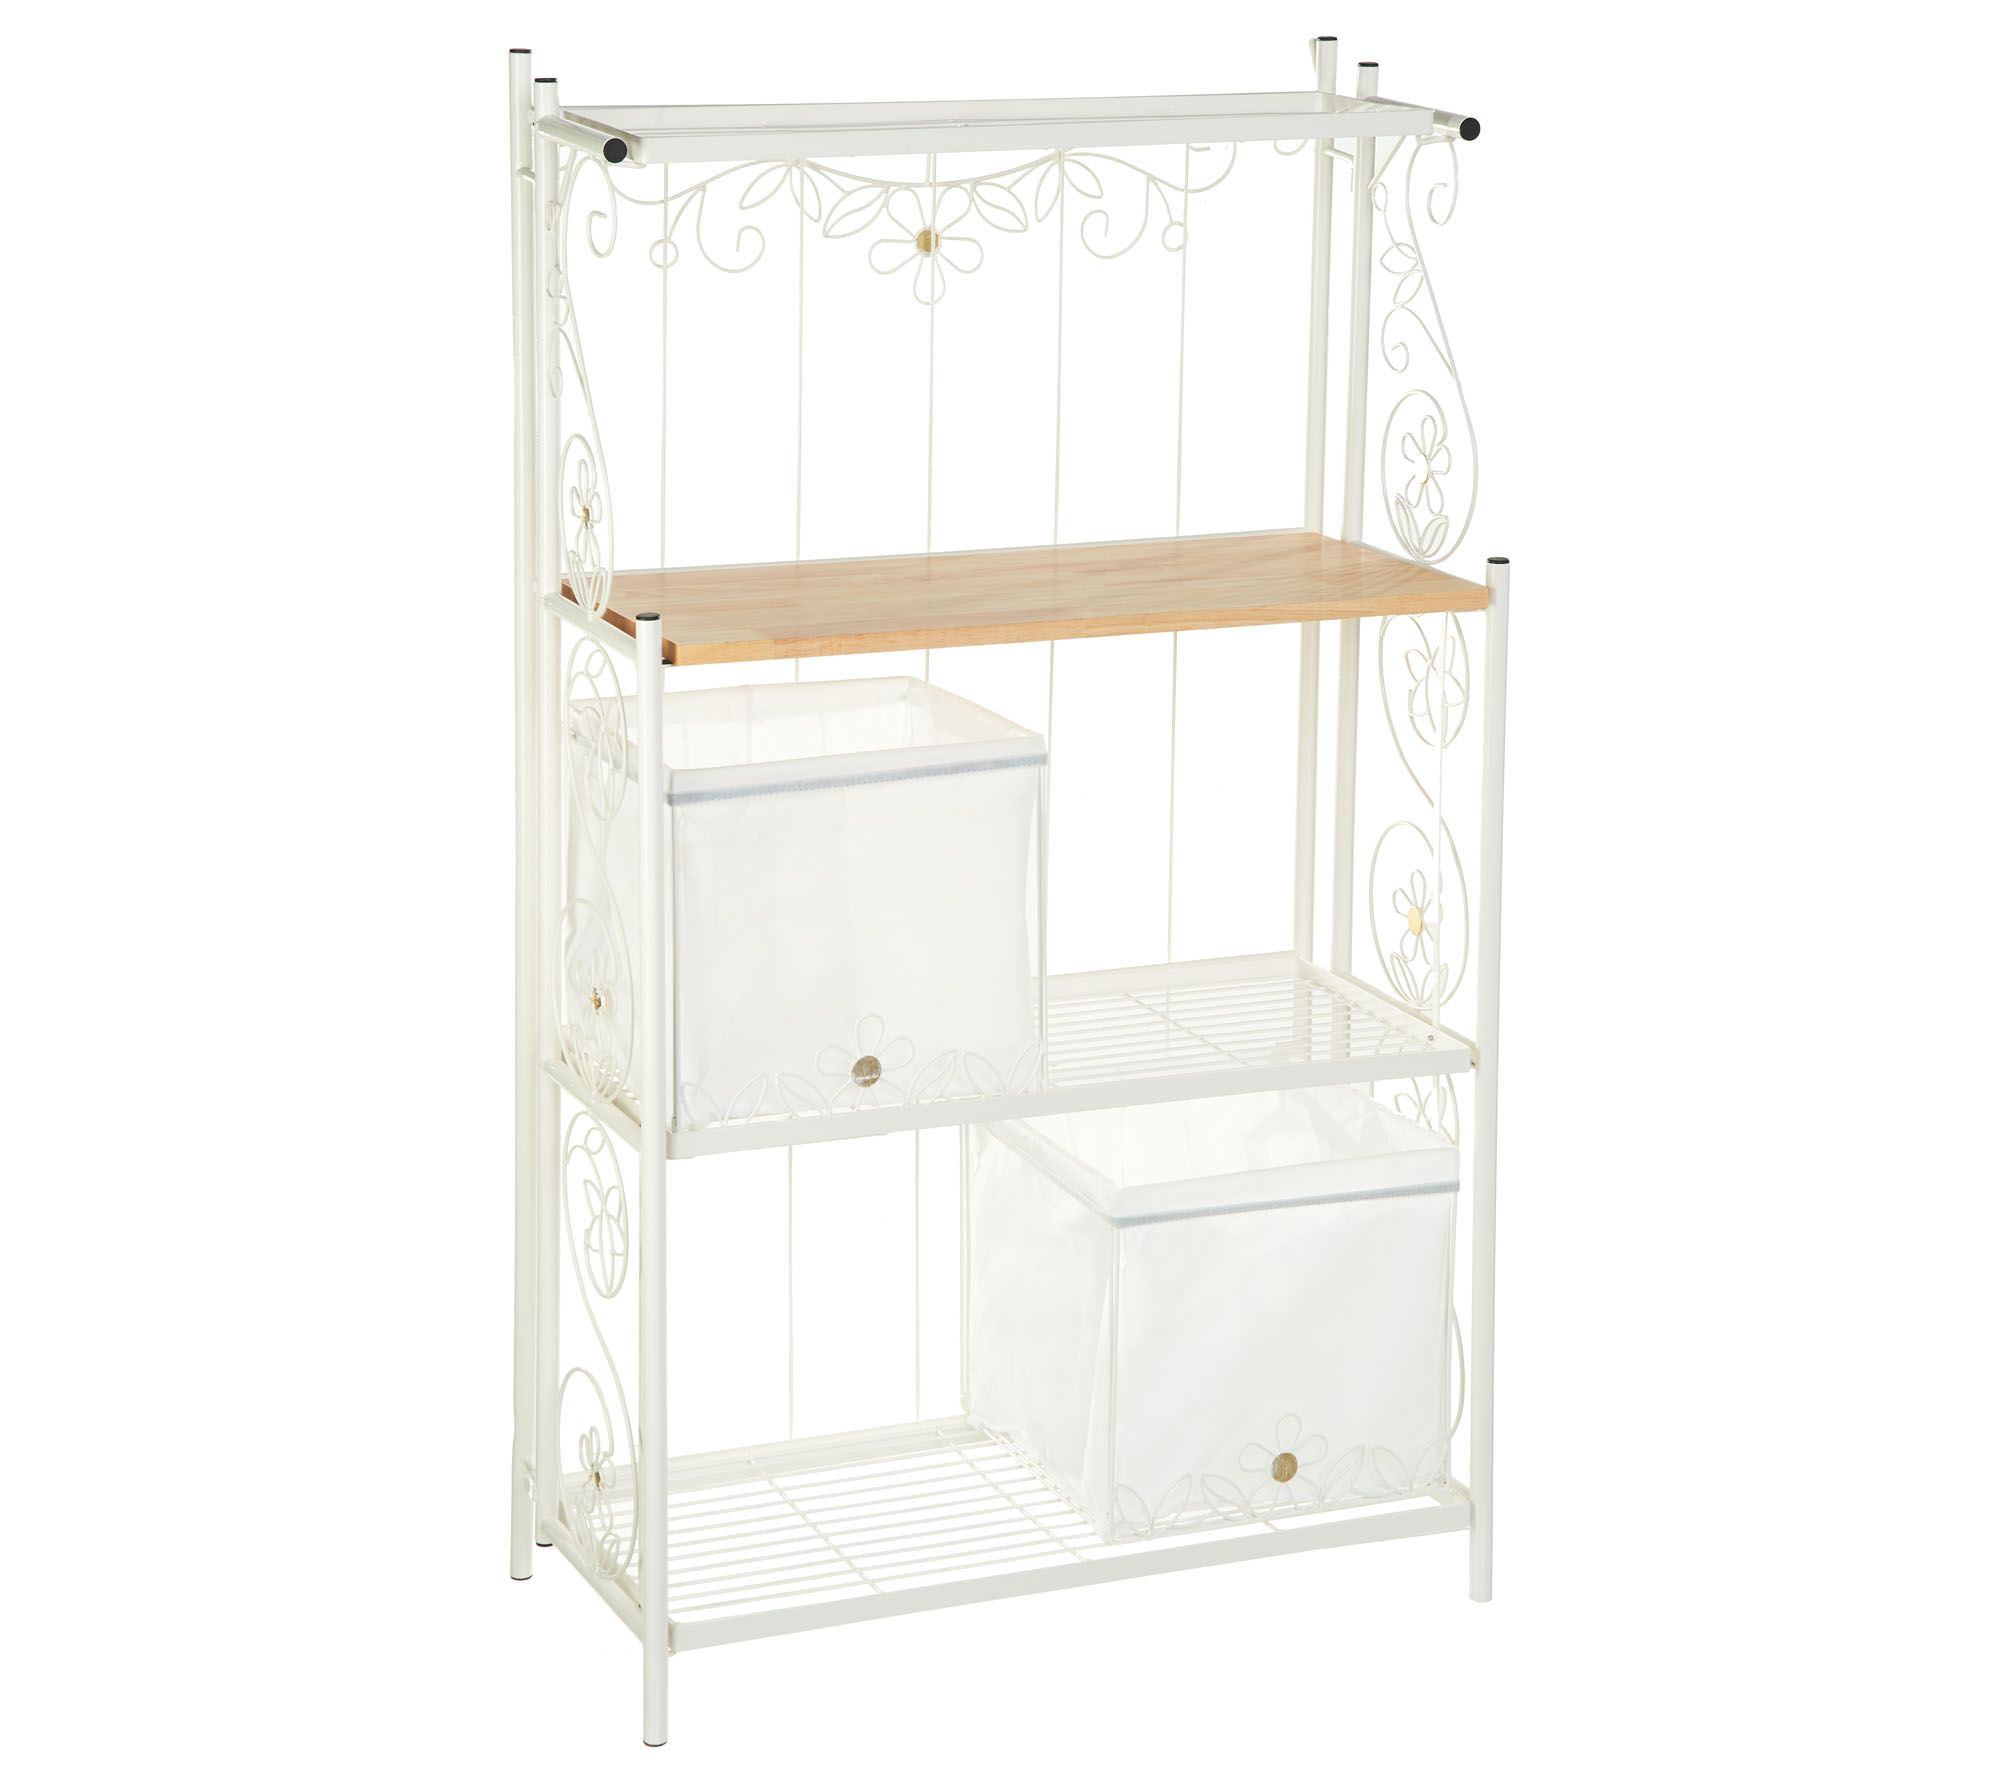 Temptations Collapsible Bakers Rack with Baskets Page 1 QVCcom